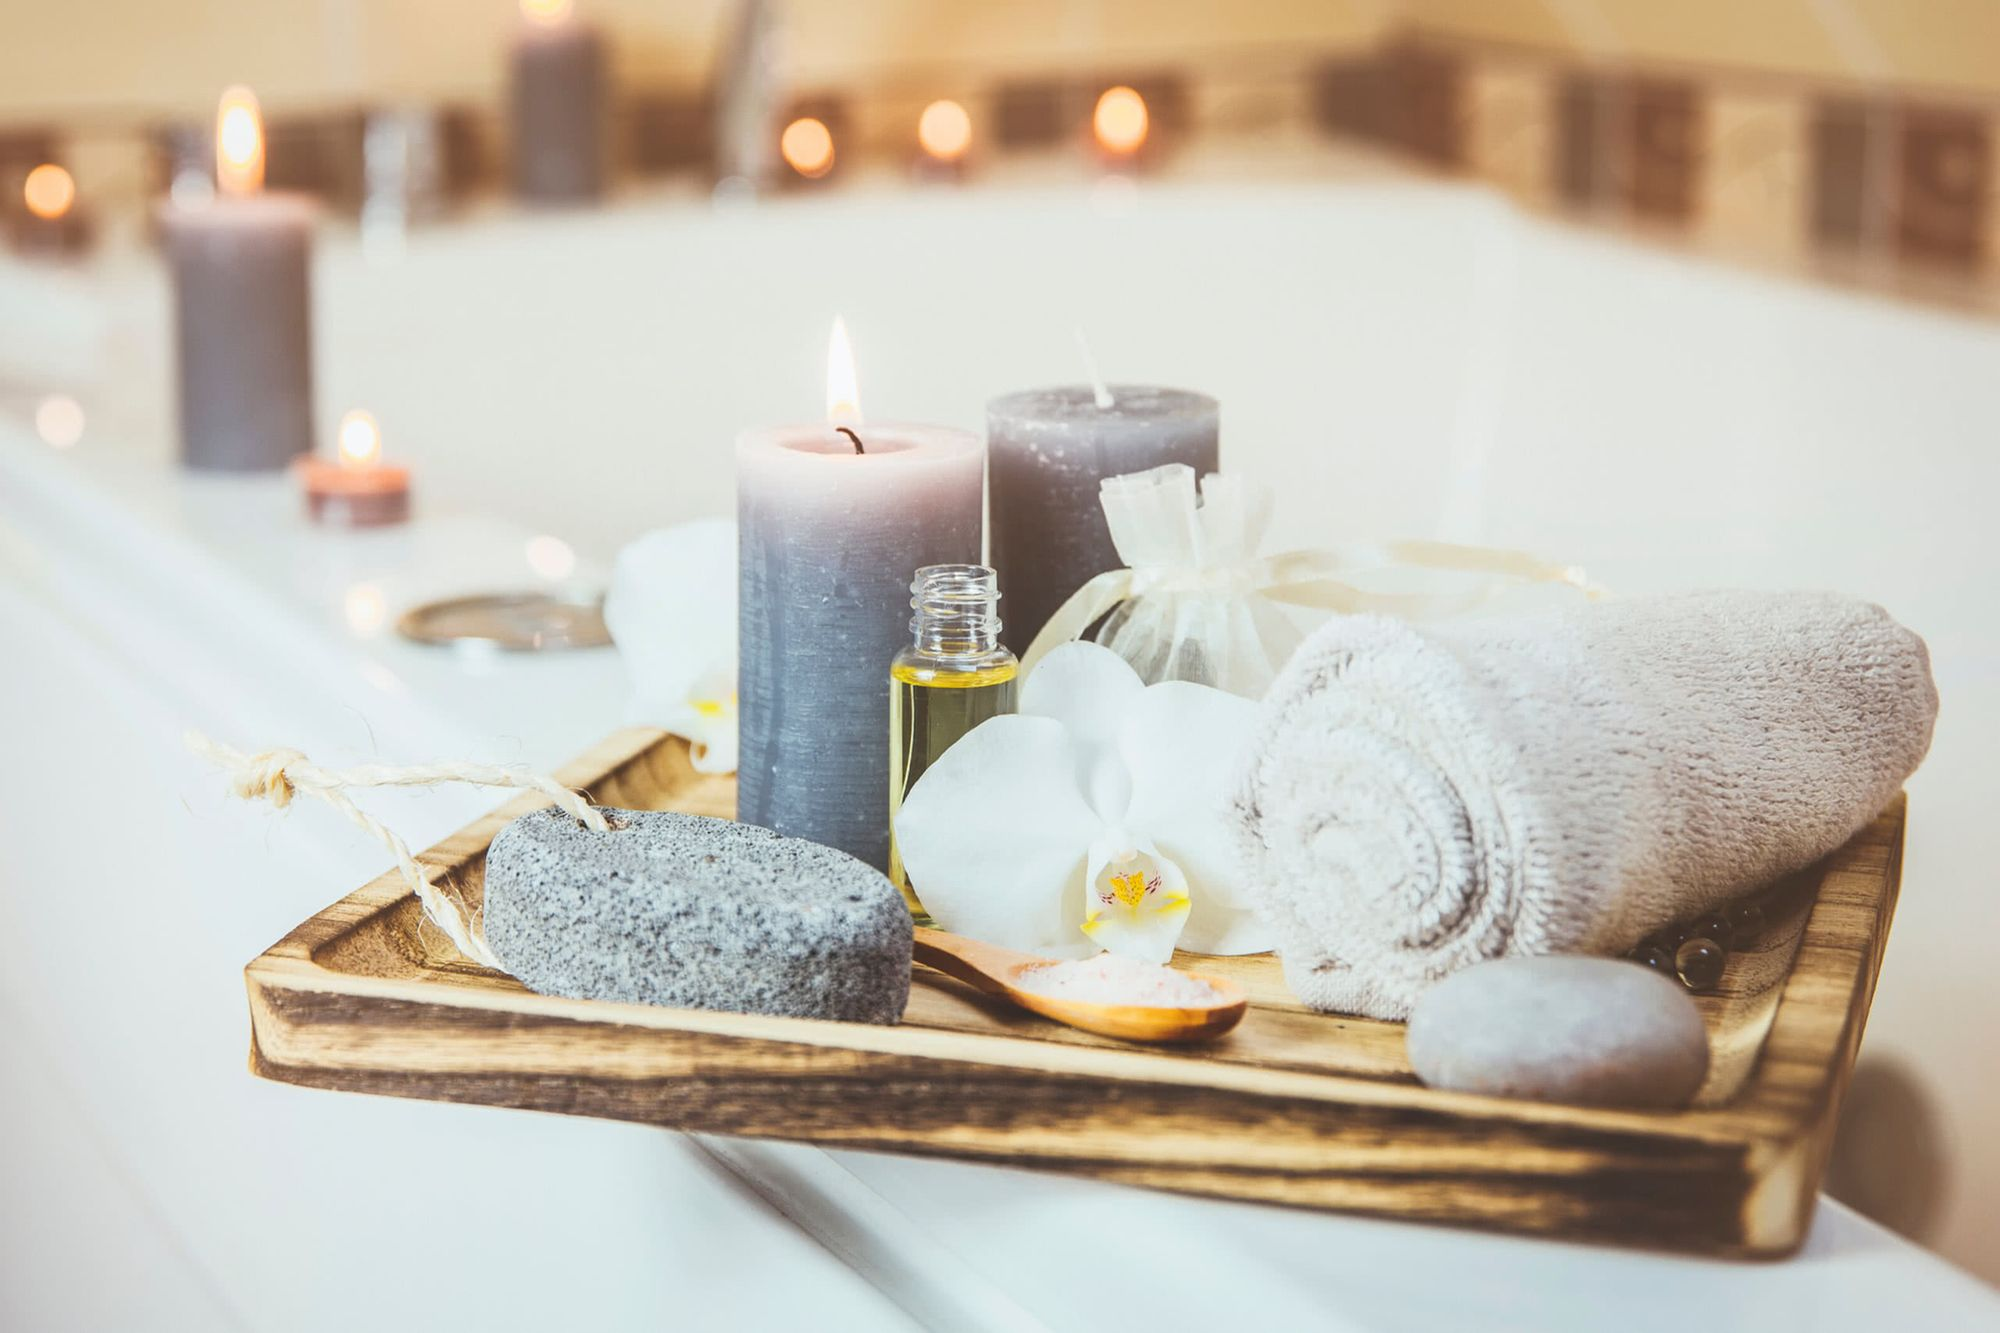 Best Spas for Self-Care in the Orlando, Florida Area